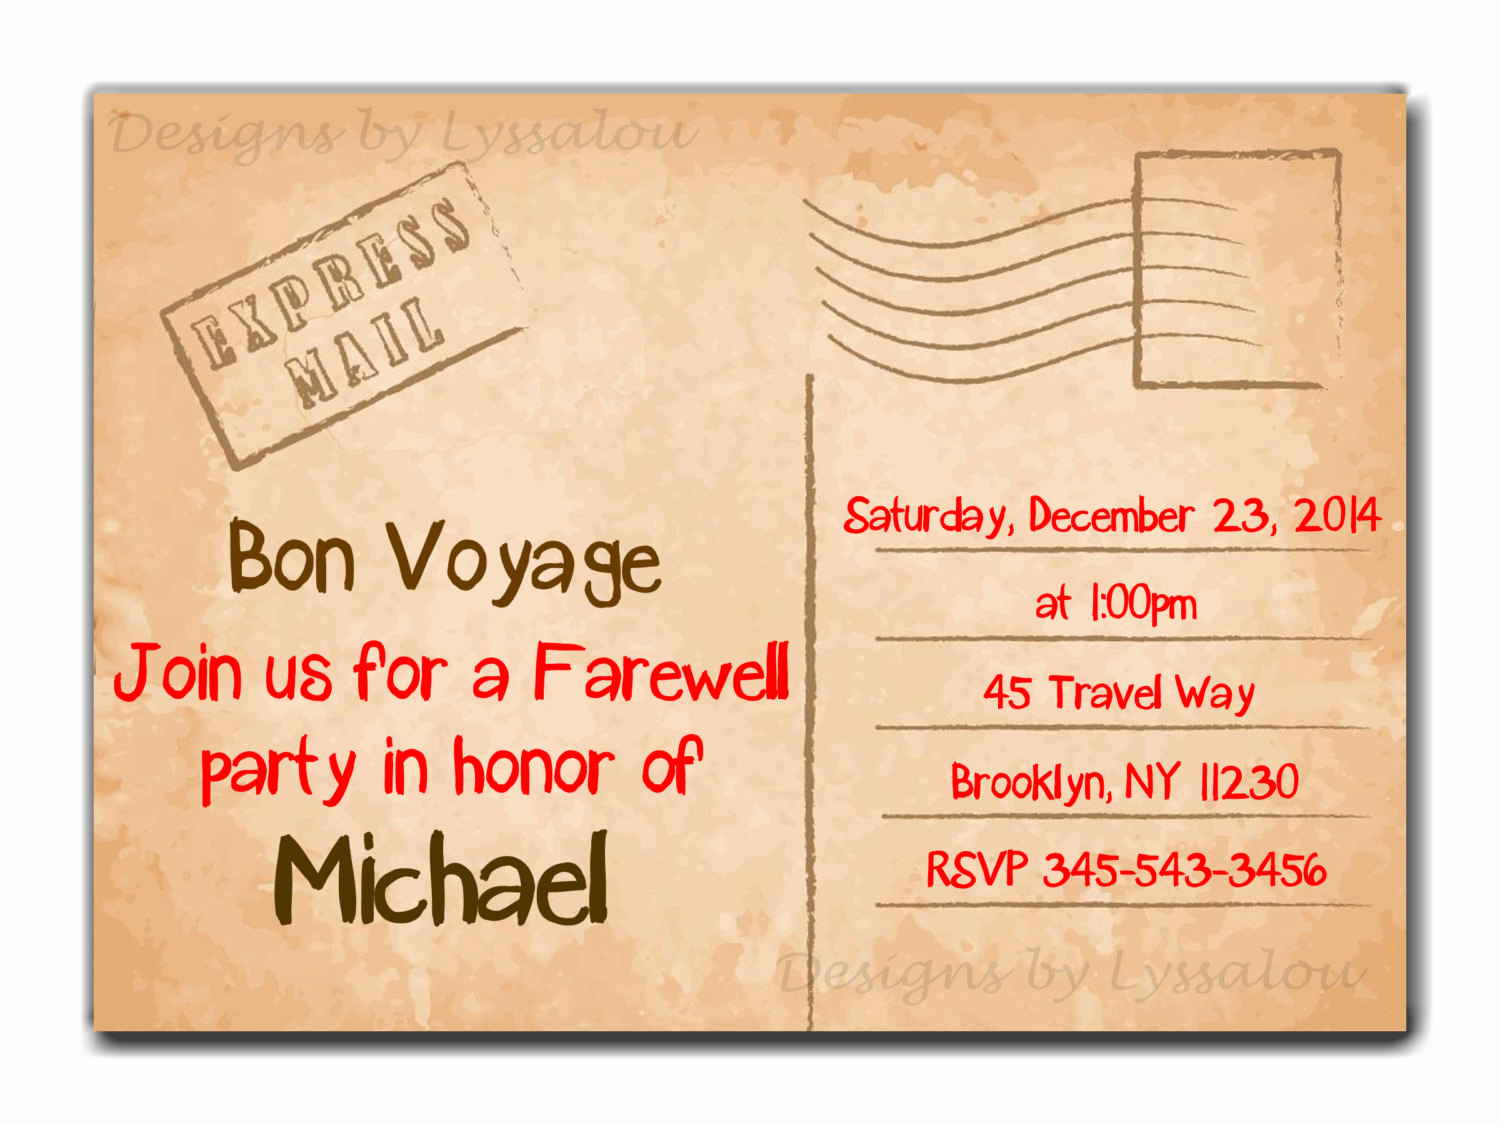 Bon Voyage Party Invitation Best Of Travel Farewell Party Invitation Bon Voyage Going Away